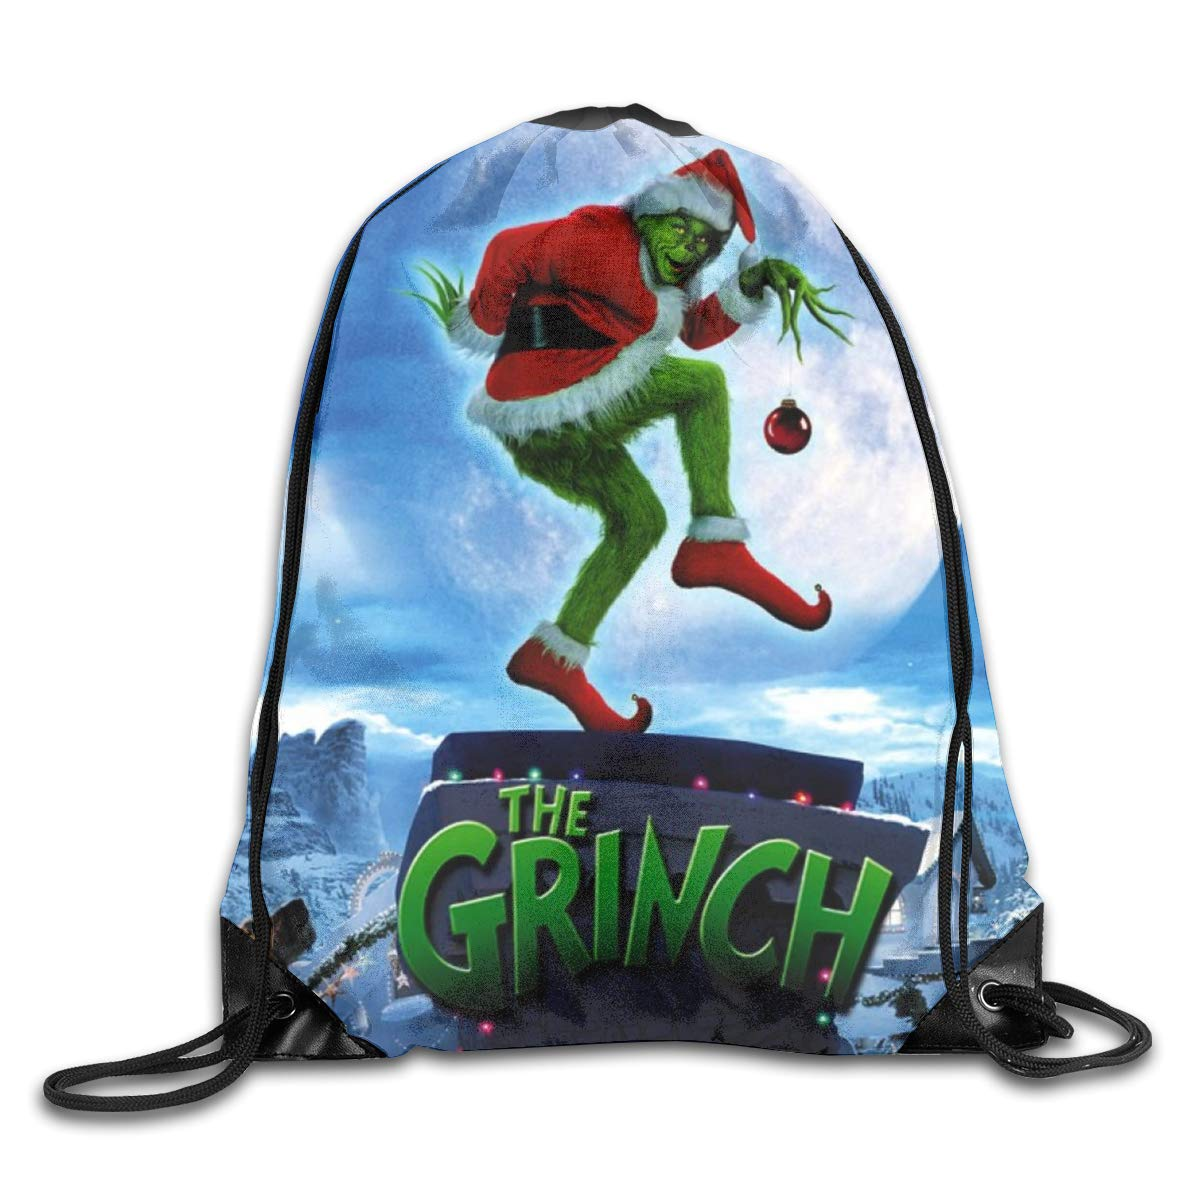 6581b89f3602 Amazon.com  CNJELLAW G-Grin-ch Cute Drawstring Backpack String Bags Hiking  Polyester Shoulder Bag  Home   Kitchen